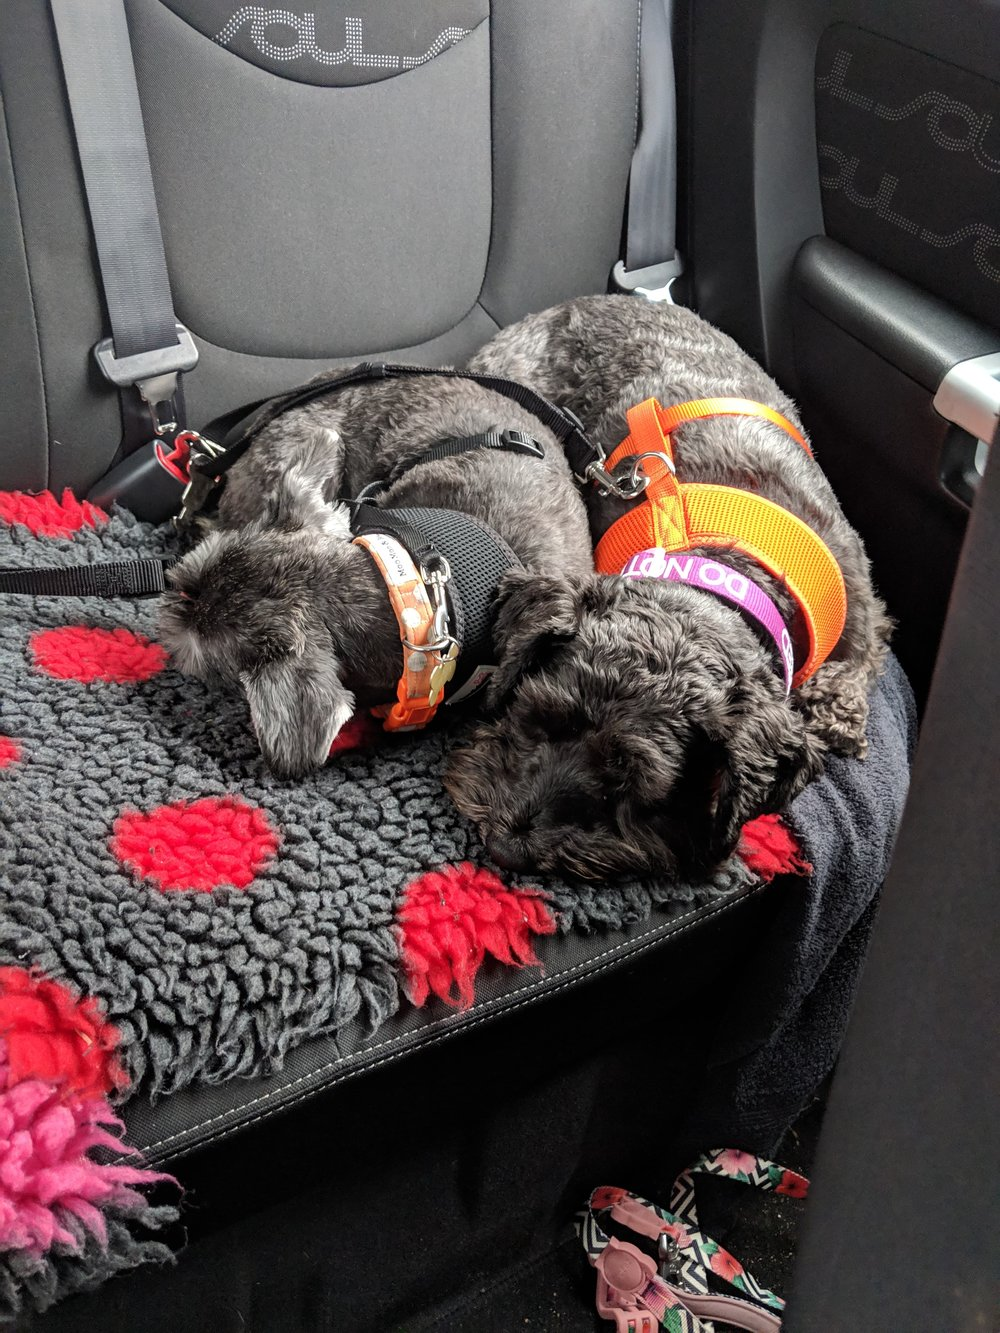 Nova and sister Sally on their way home after her important eye check, March 2019